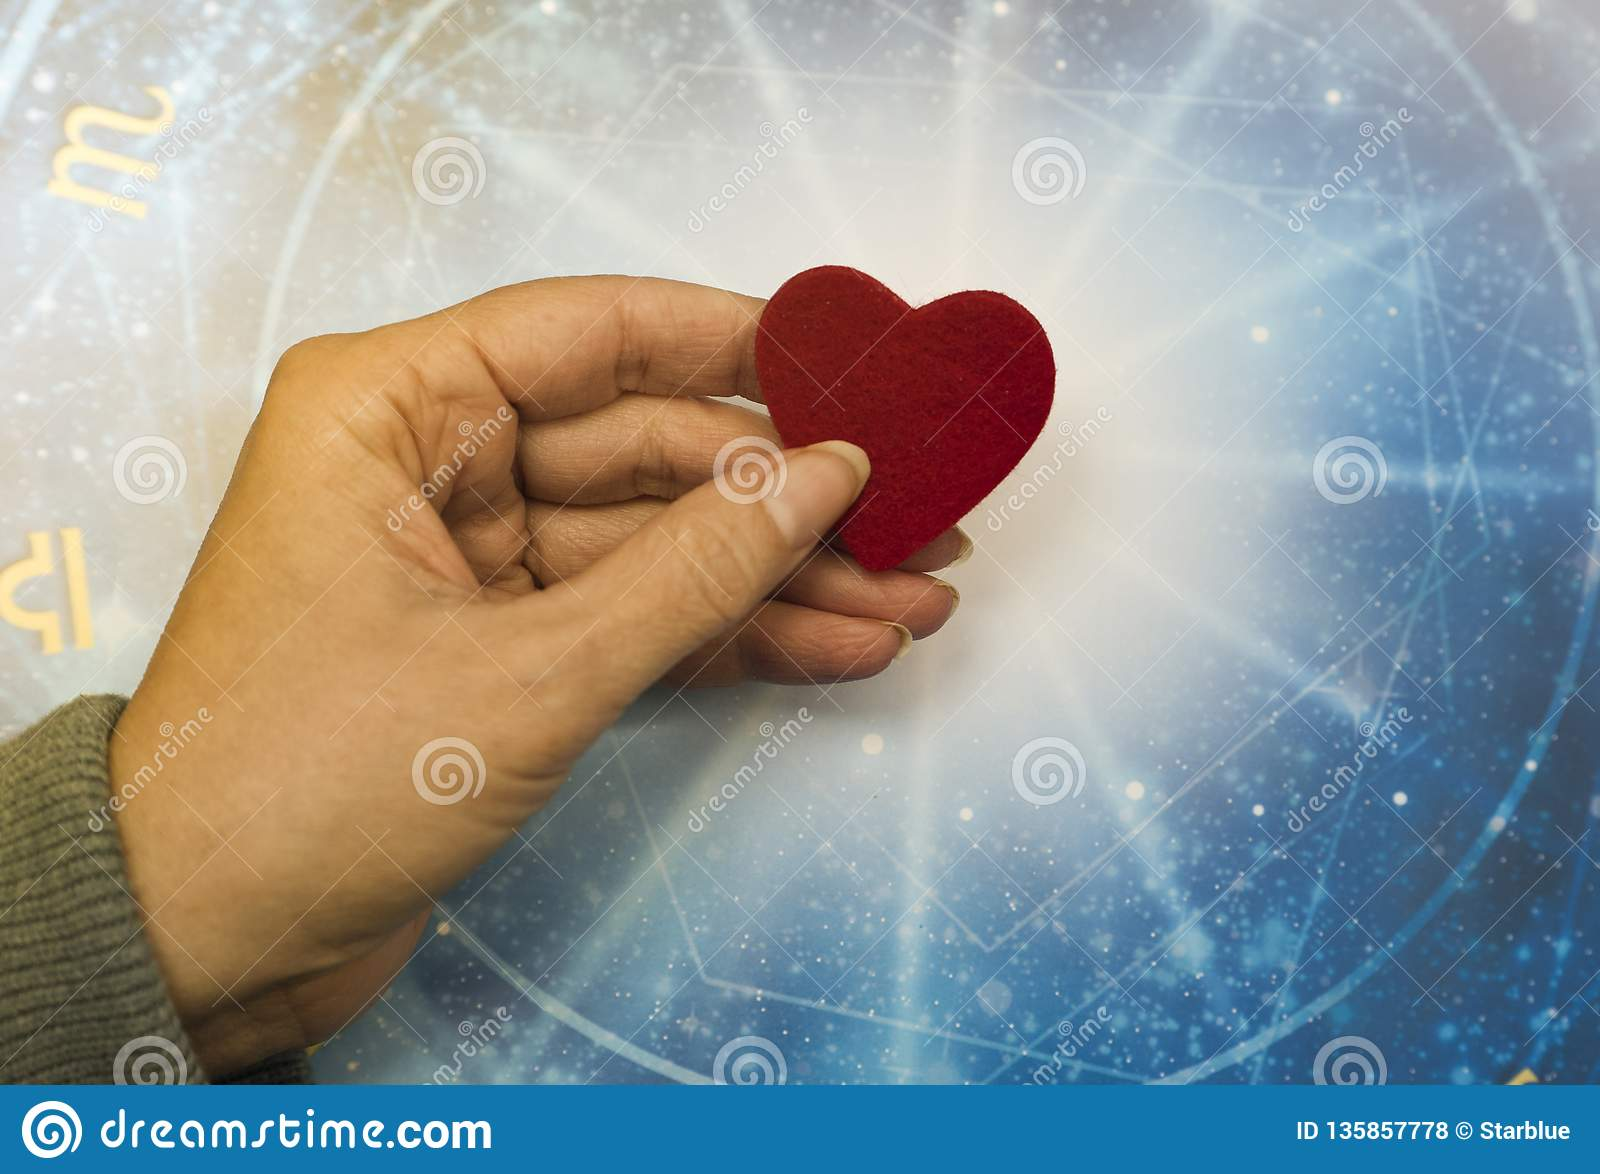 Woman hand keeping a red heart over blue horoscope like astrology, zodiac and love concept